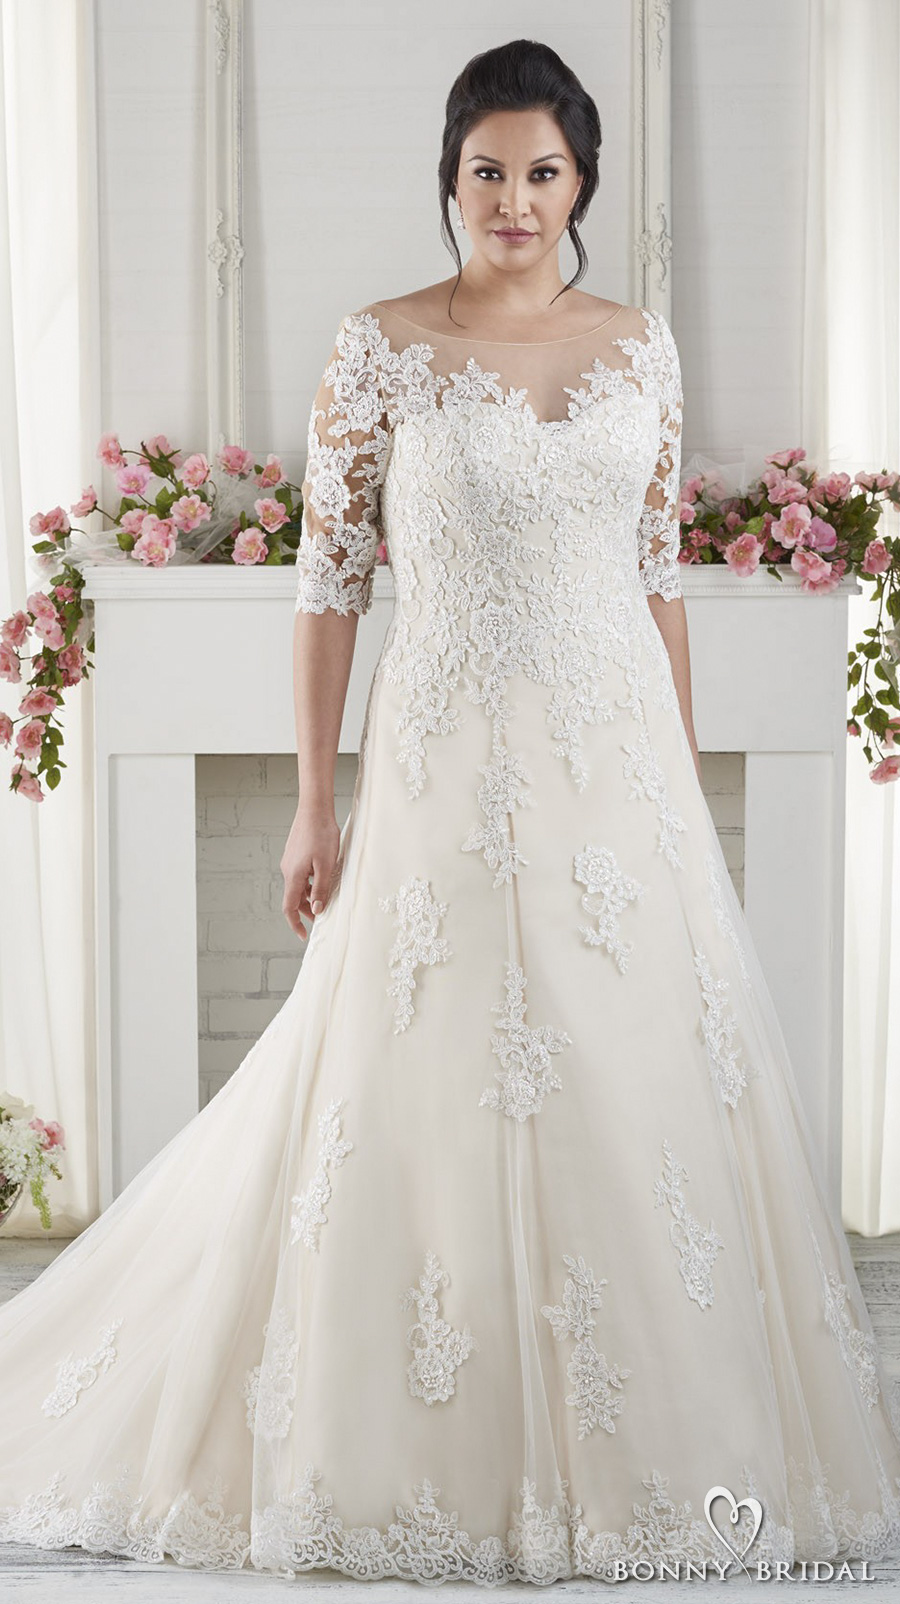 Neckline And Embellished Dress Fit Wedding Sweetheart Line Lace And Soft Tulle Flare